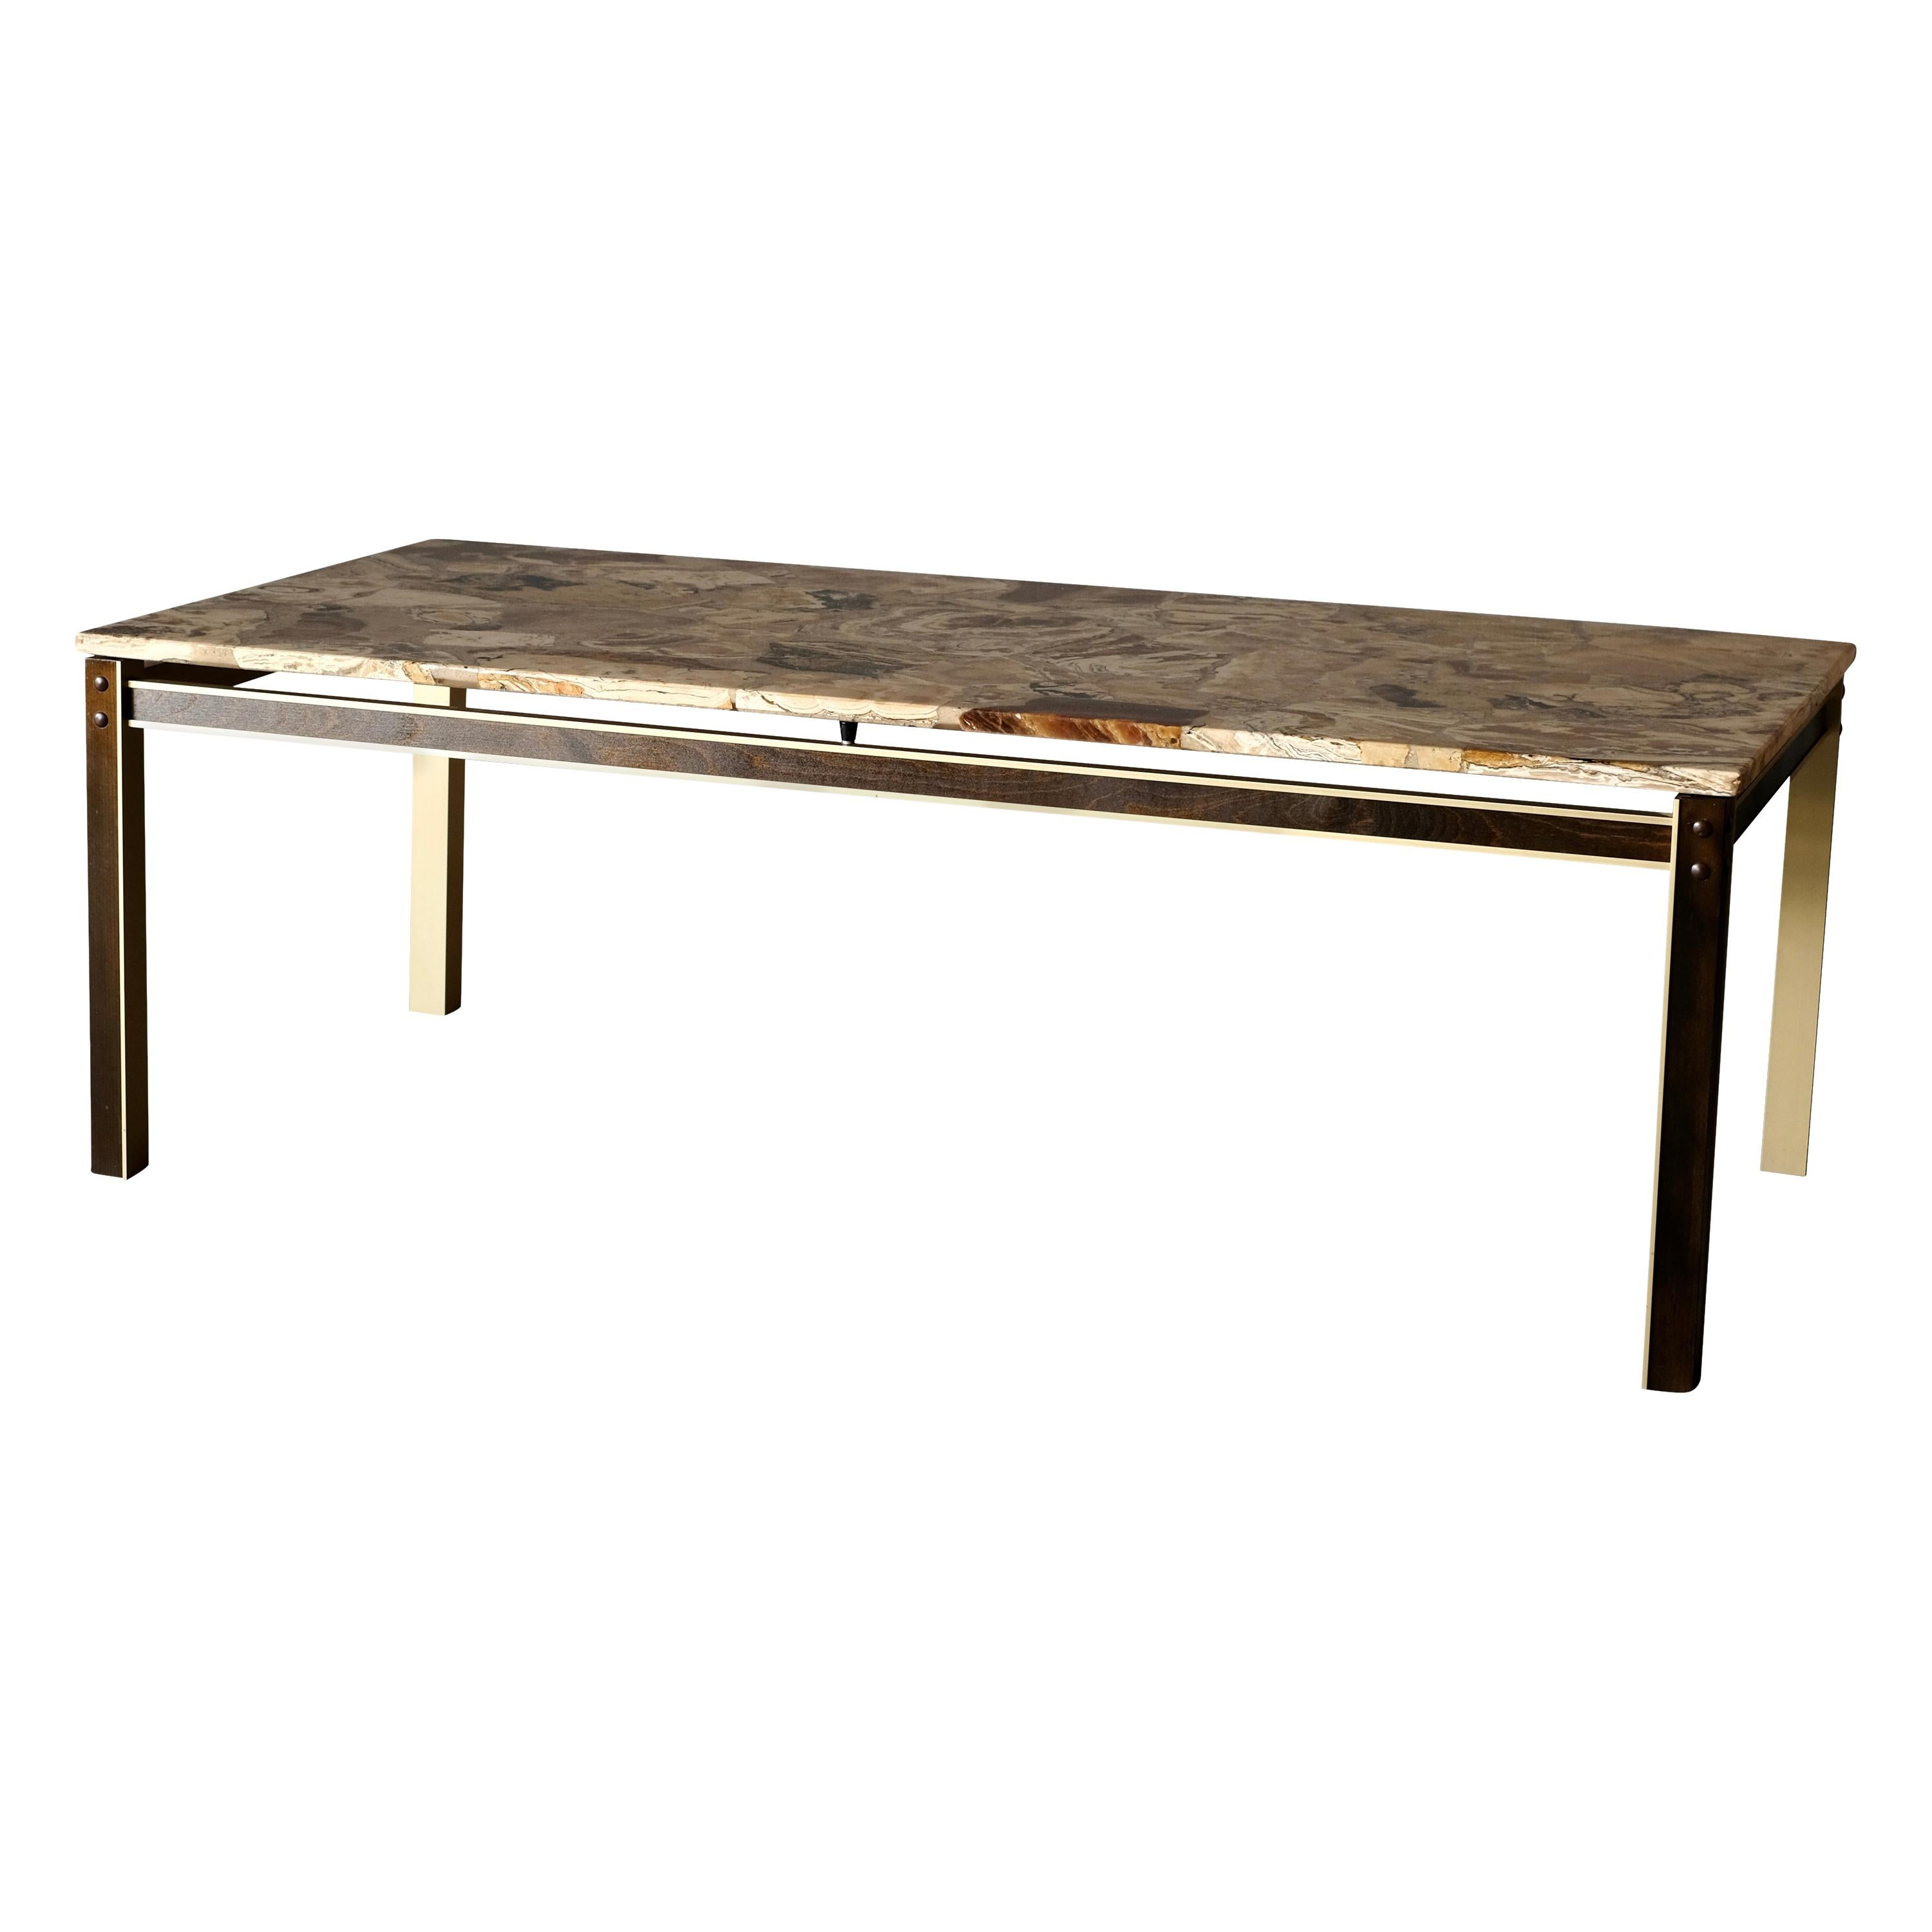 Midcentury Coffee Table with Marble Top